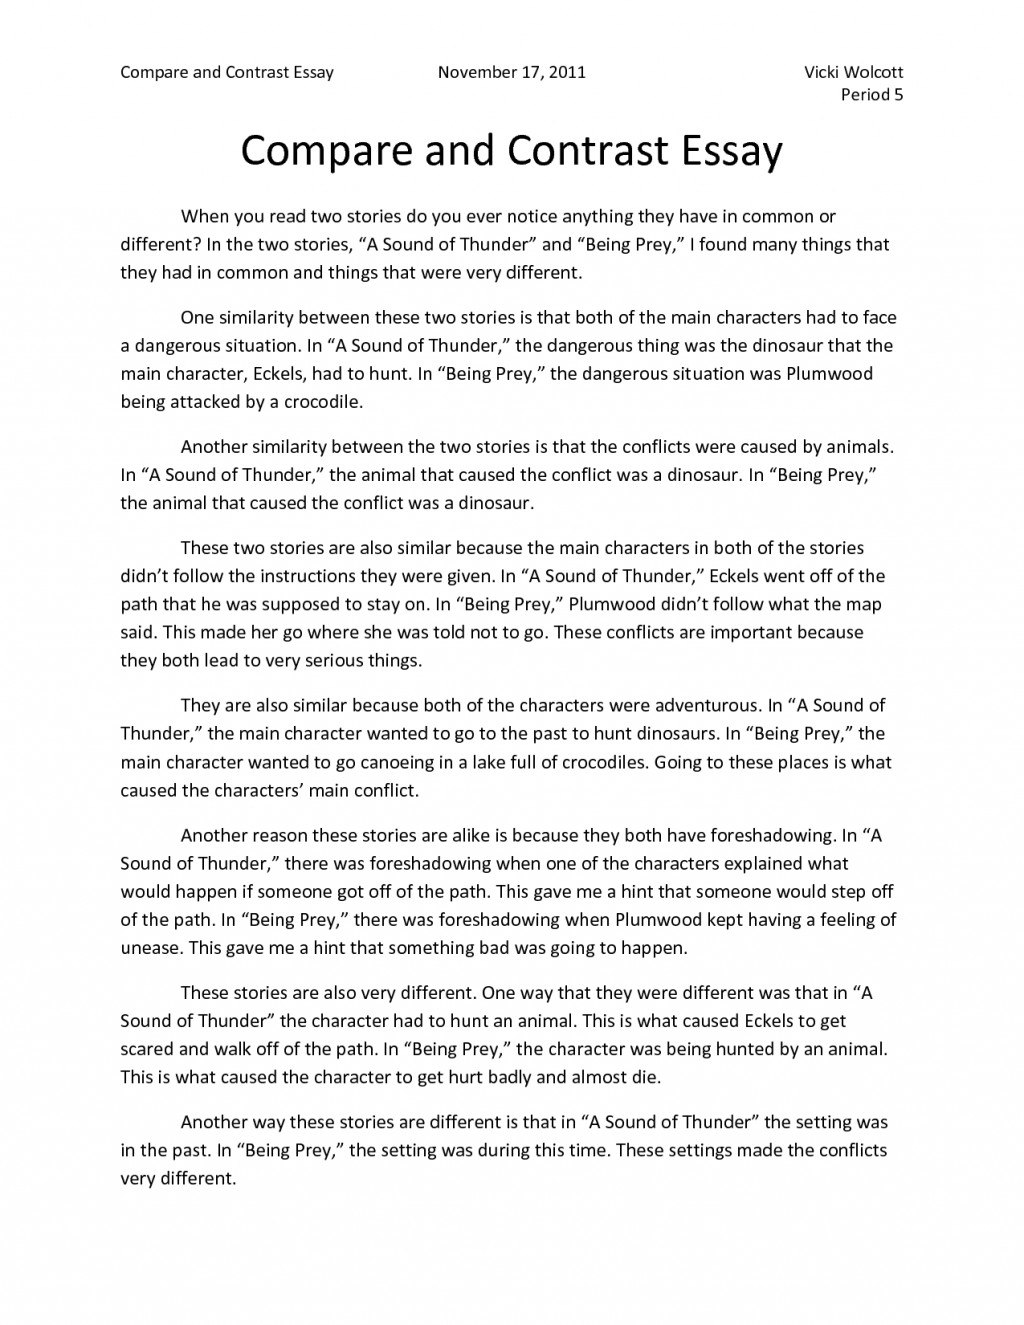 004 Essay Example Compare And Contrast Gallery Template Drawing Art Throughout College Examples Introduction Question Scholarship Free Edexcel Conclusion Frightening Sample 4th Grade Paragraph Ideas Large